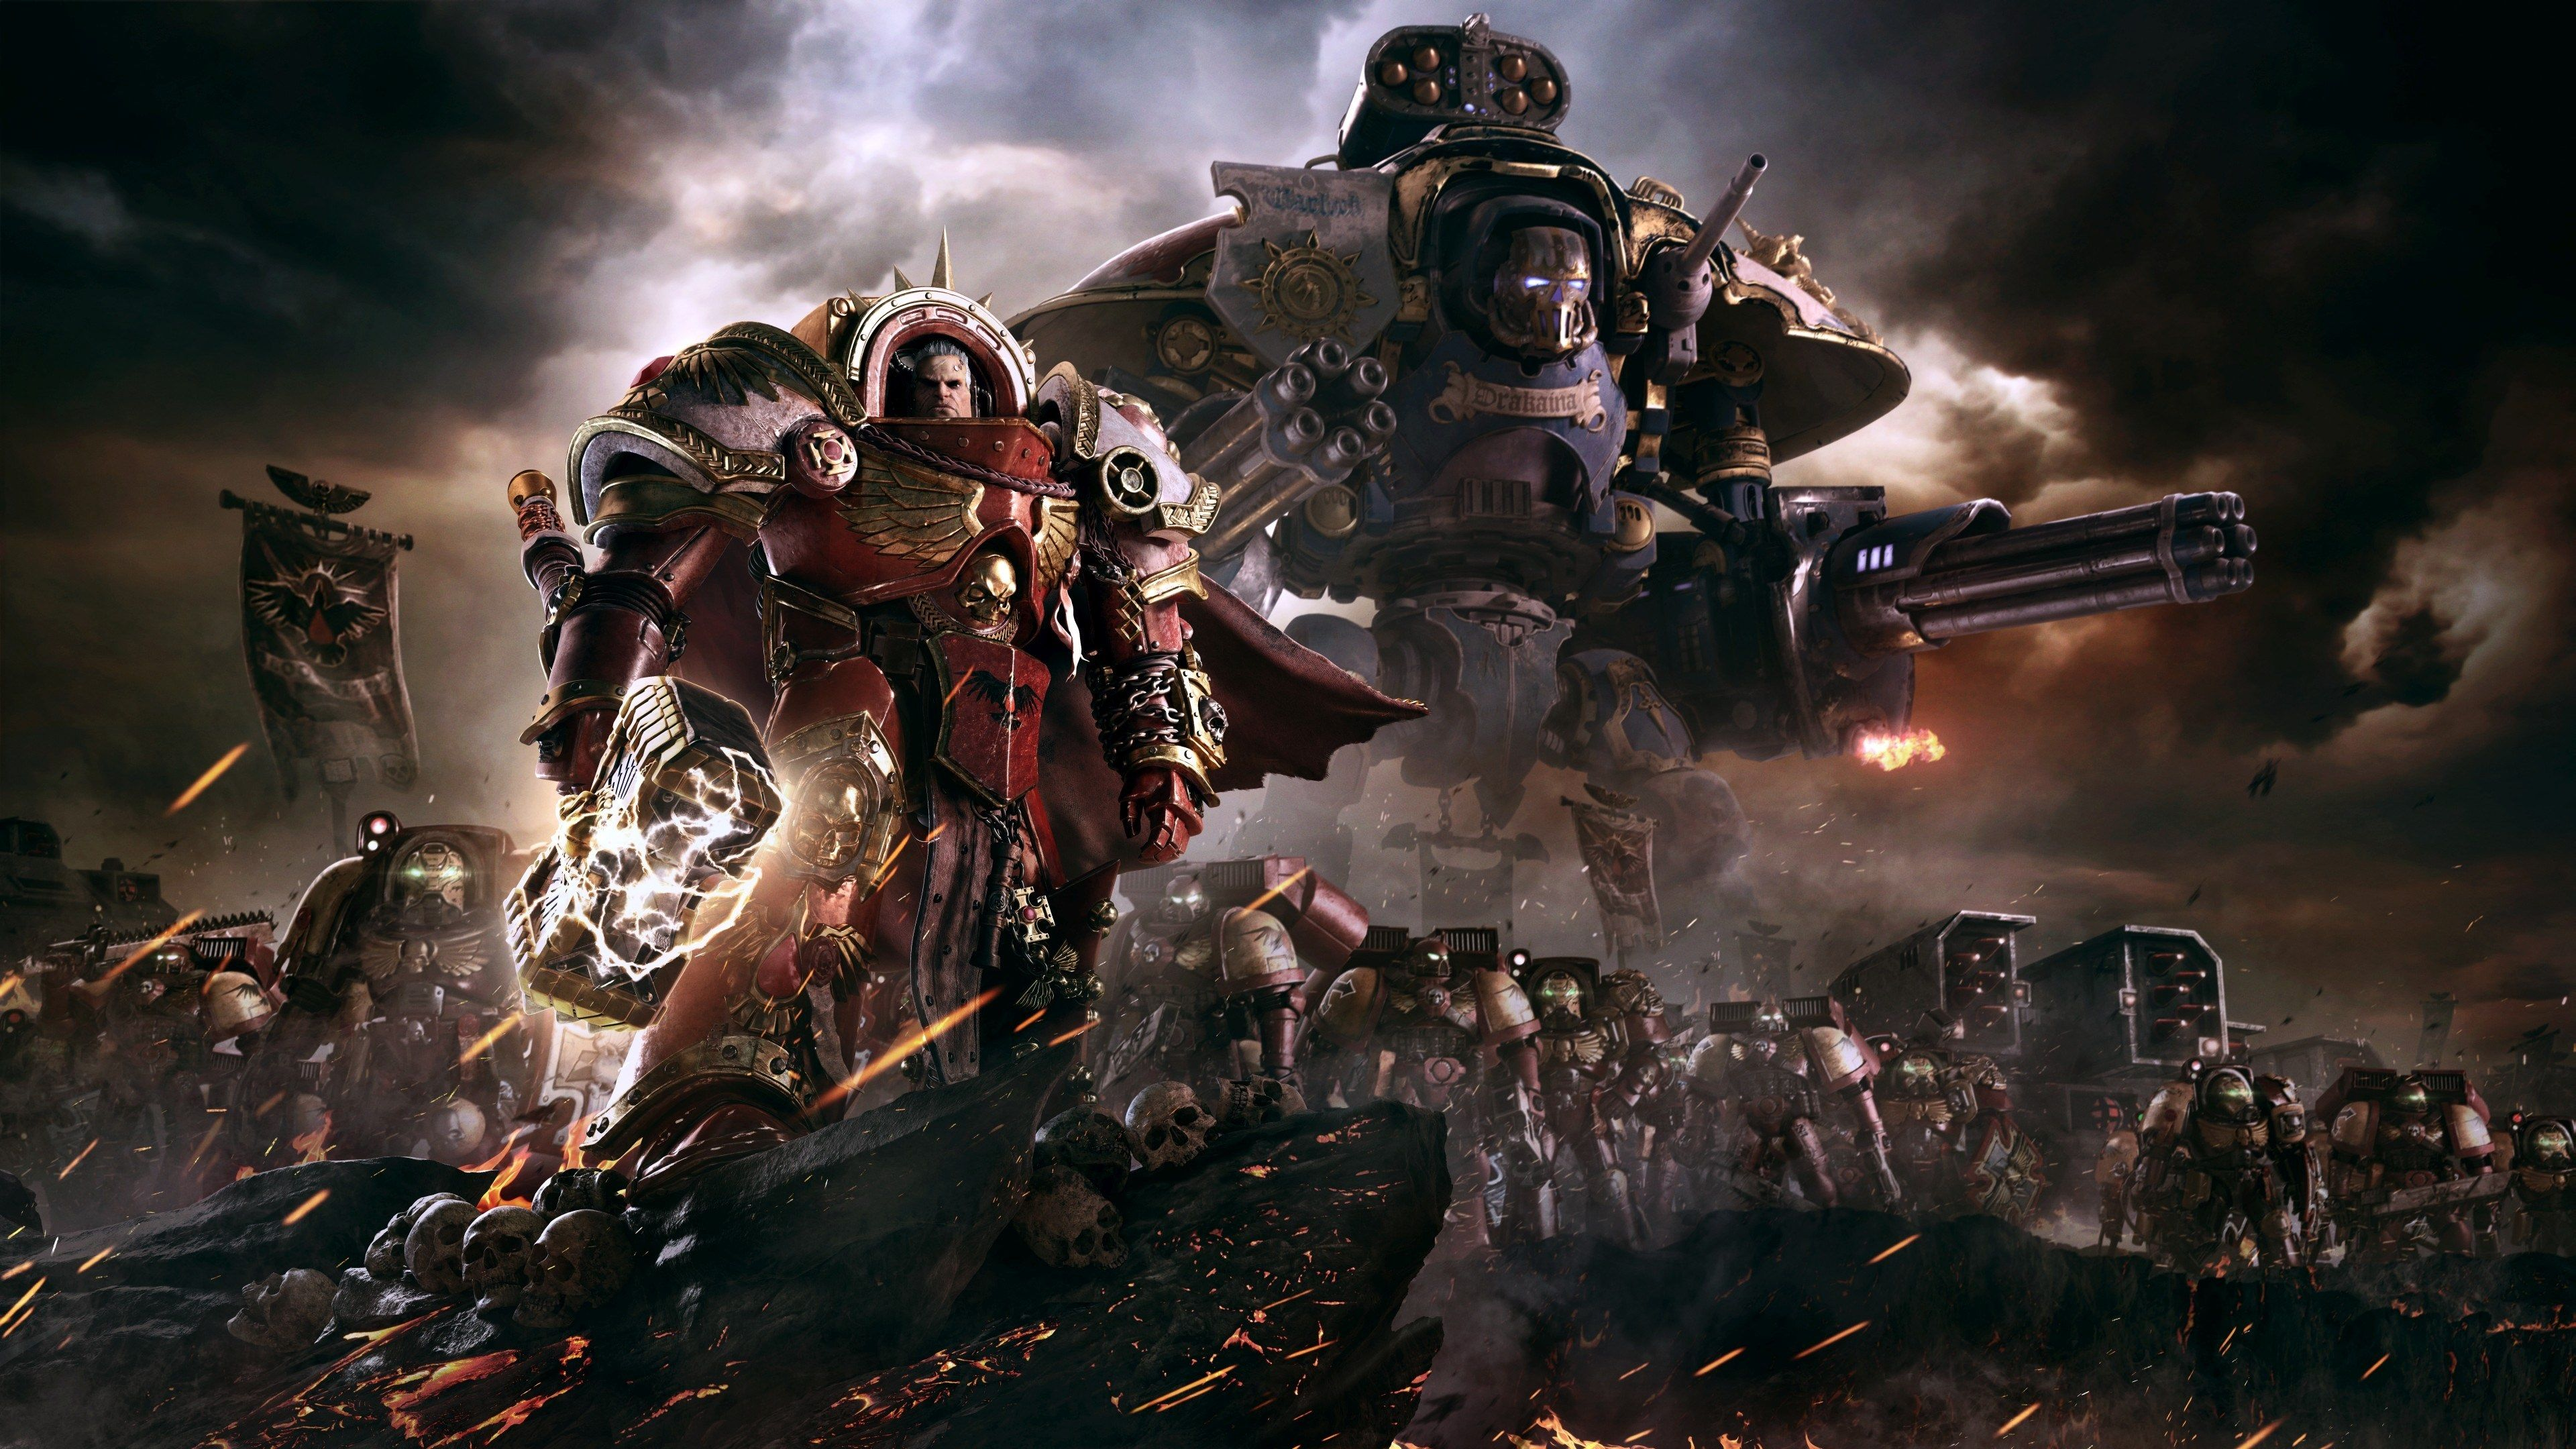 3840x2160 Warhammer 40000 Dawn Of War Iii 4k Backgrounds For Desktop Hd Backgrounds With Images Warhammer Warhammer 40k Warhammer 40000